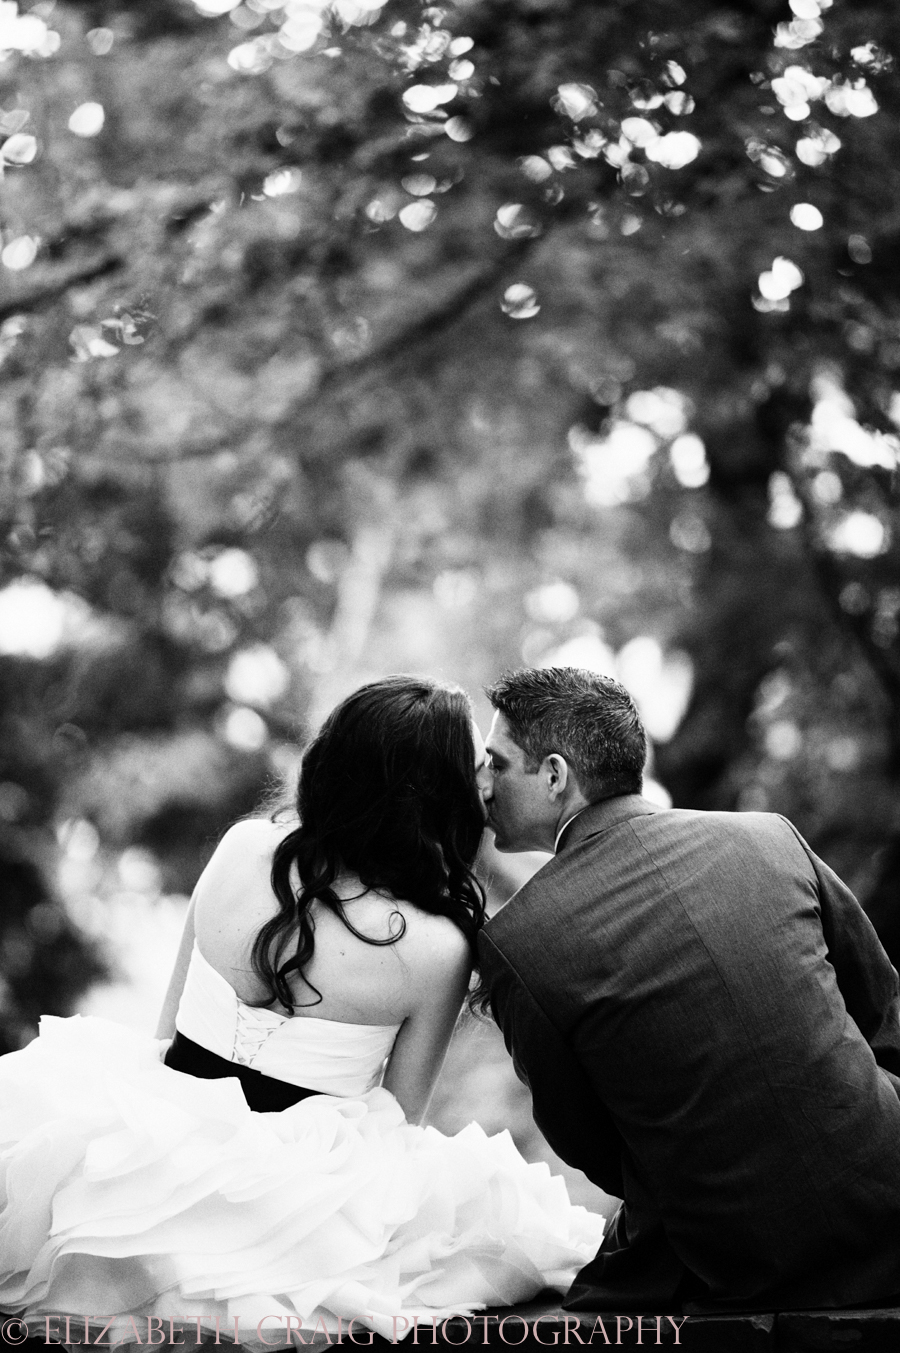 Romantic Wedding Photos | Elizabeth Craig Photography-007